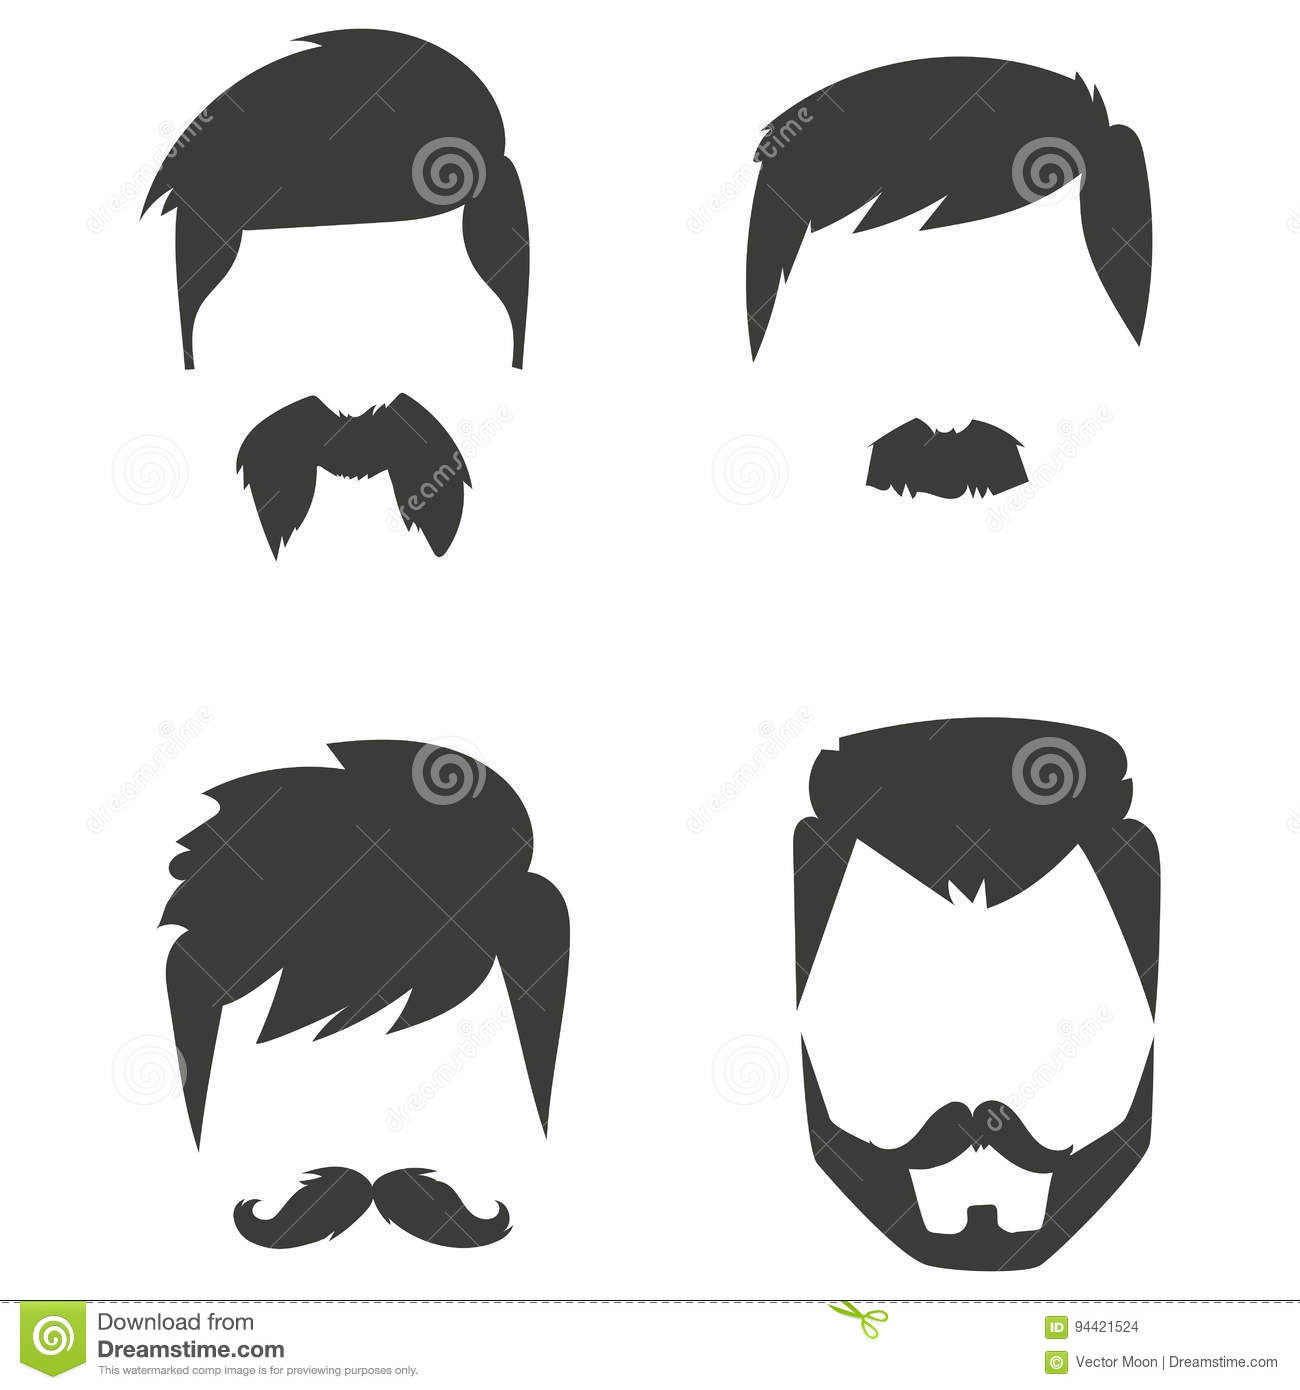 40698556f Vector set of hipster retro hair style mustache vintage old shave male  facial beard haircut illustration. Curly face collection fashion barber  hairstyle ...